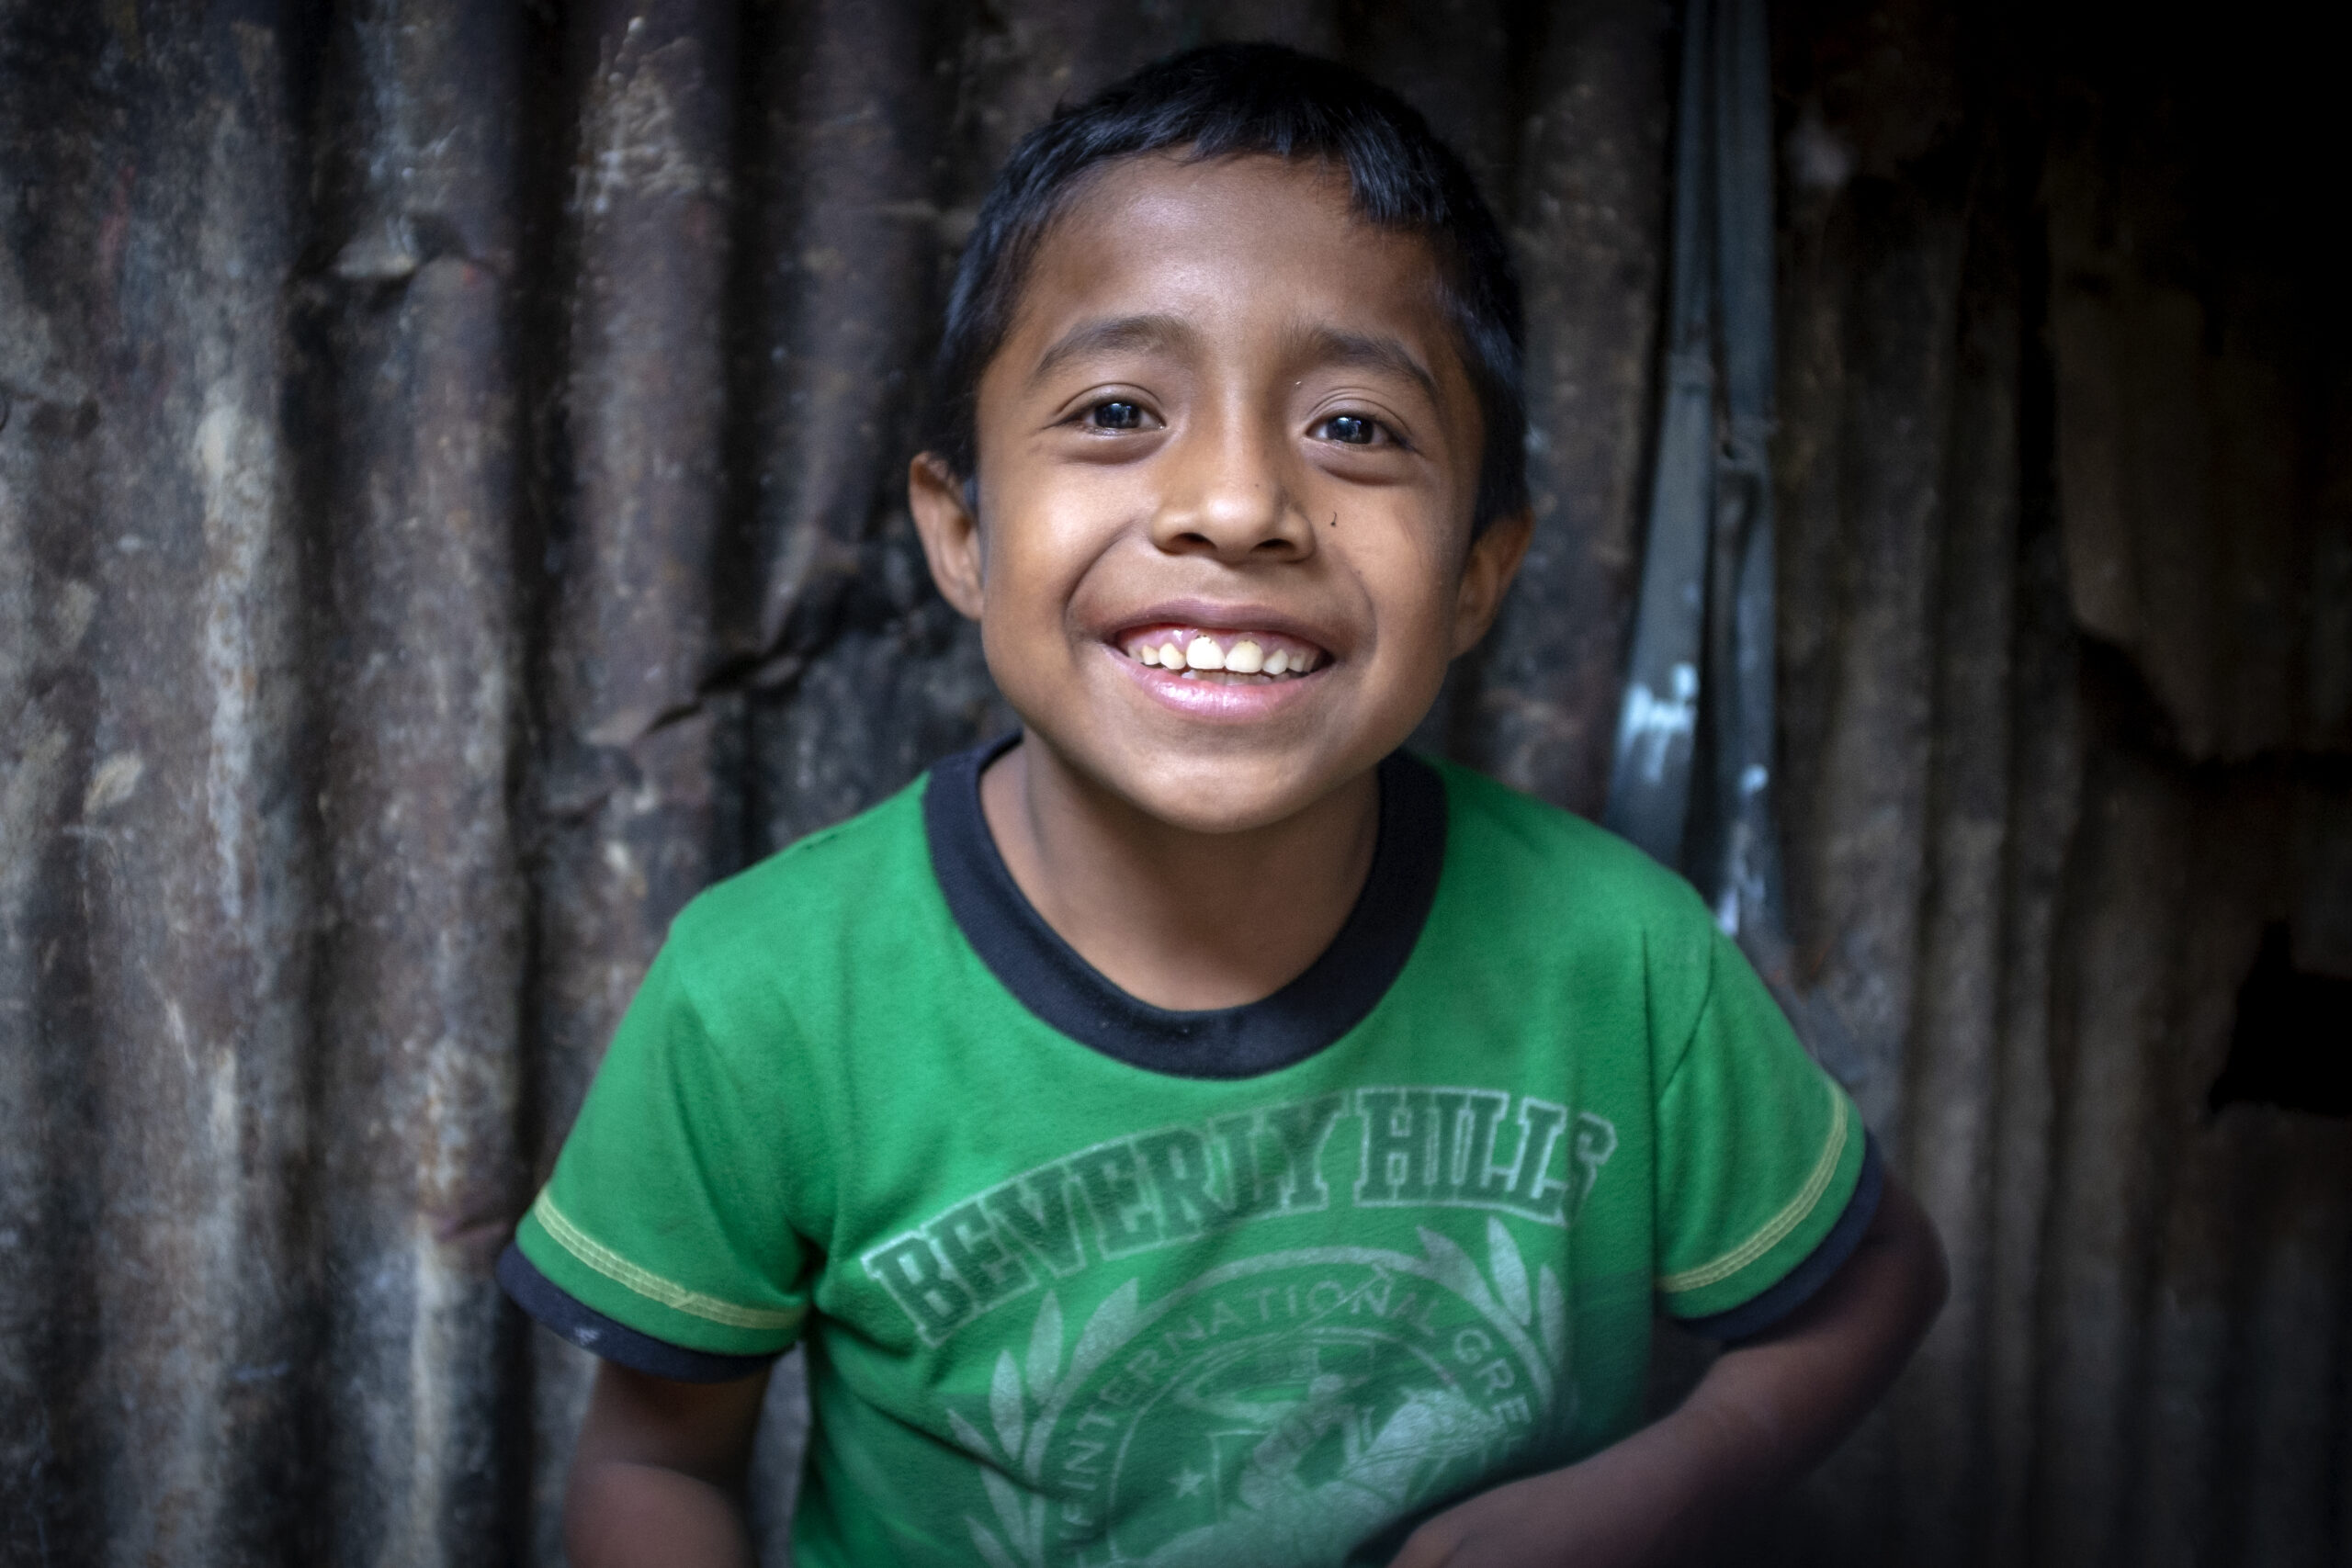 Guatemalan child smiling